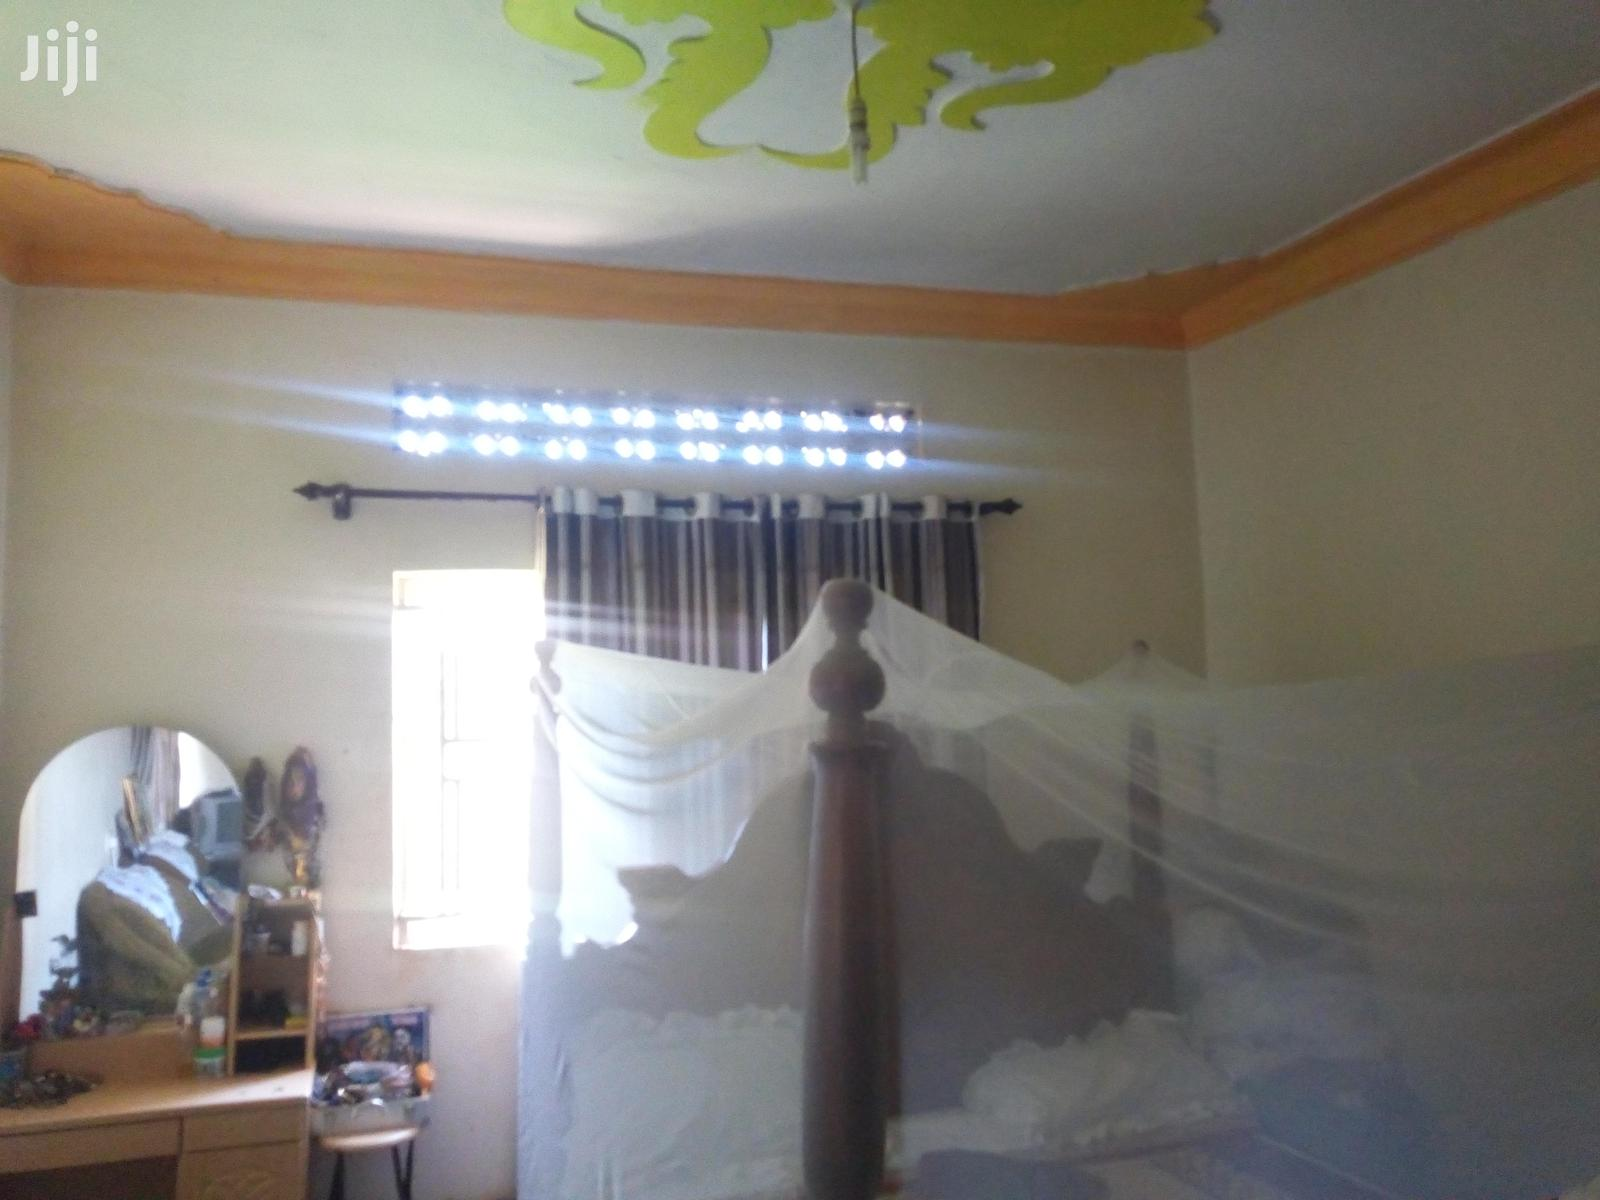 On Sale:4bedrooms 3bathrooms On 12decimals | Houses & Apartments For Sale for sale in Kampala, Central Region, Uganda